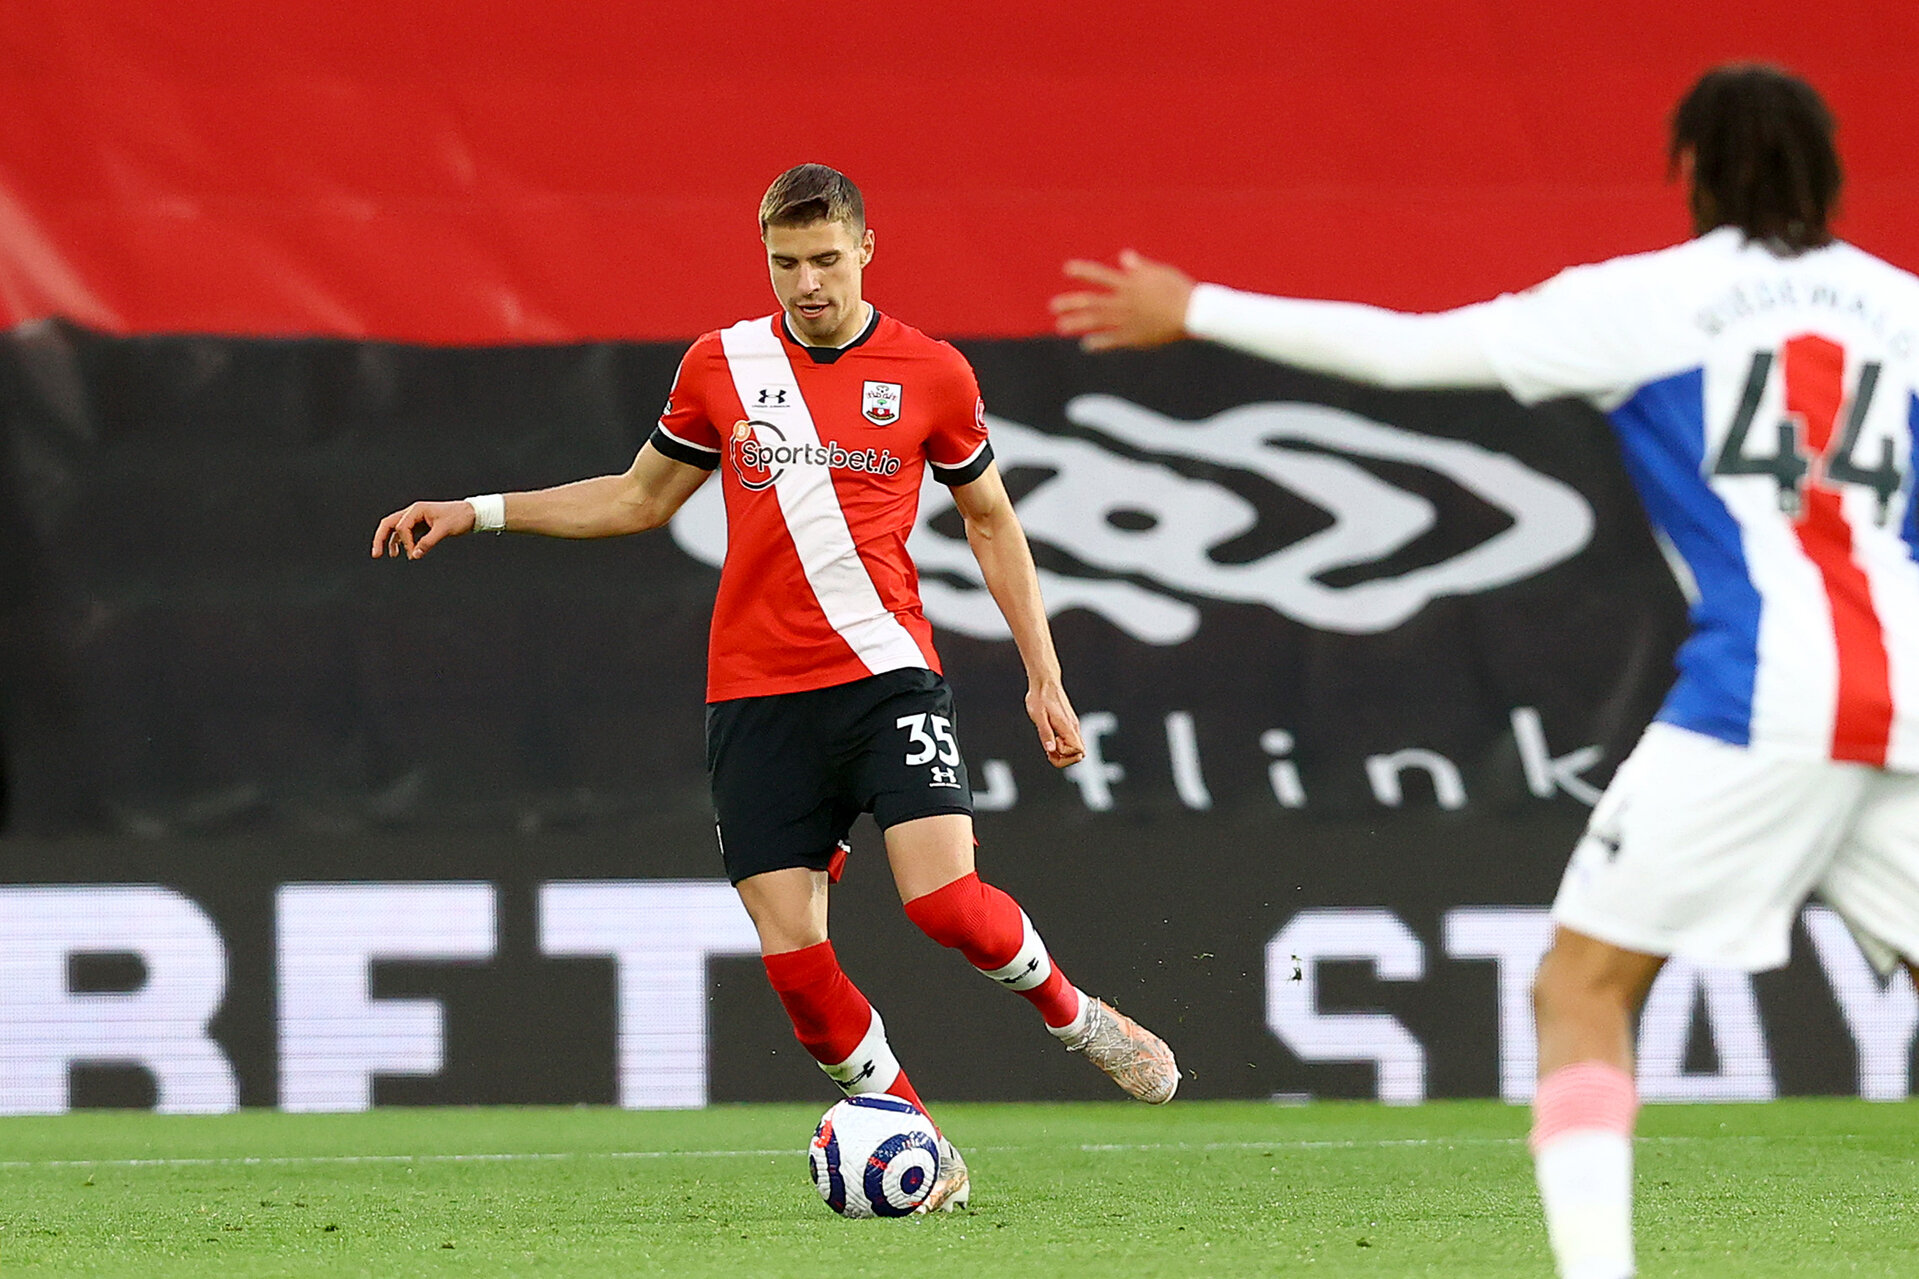 SOUTHAMPTON, ENGLAND - MAY 11: Jan Bednarek of Southampton during the Premier League match between Southampton and Crystal Palace at St Mary's Stadium on May 11, 2021 in Southampton, England. Sporting stadiums around the UK remain under strict restrictions due to the Coronavirus Pandemic as Government social distancing laws prohibit fans inside venues resulting in games being played behind closed doors.  (Photo by Matt Watson/Southampton FC via Getty Images)